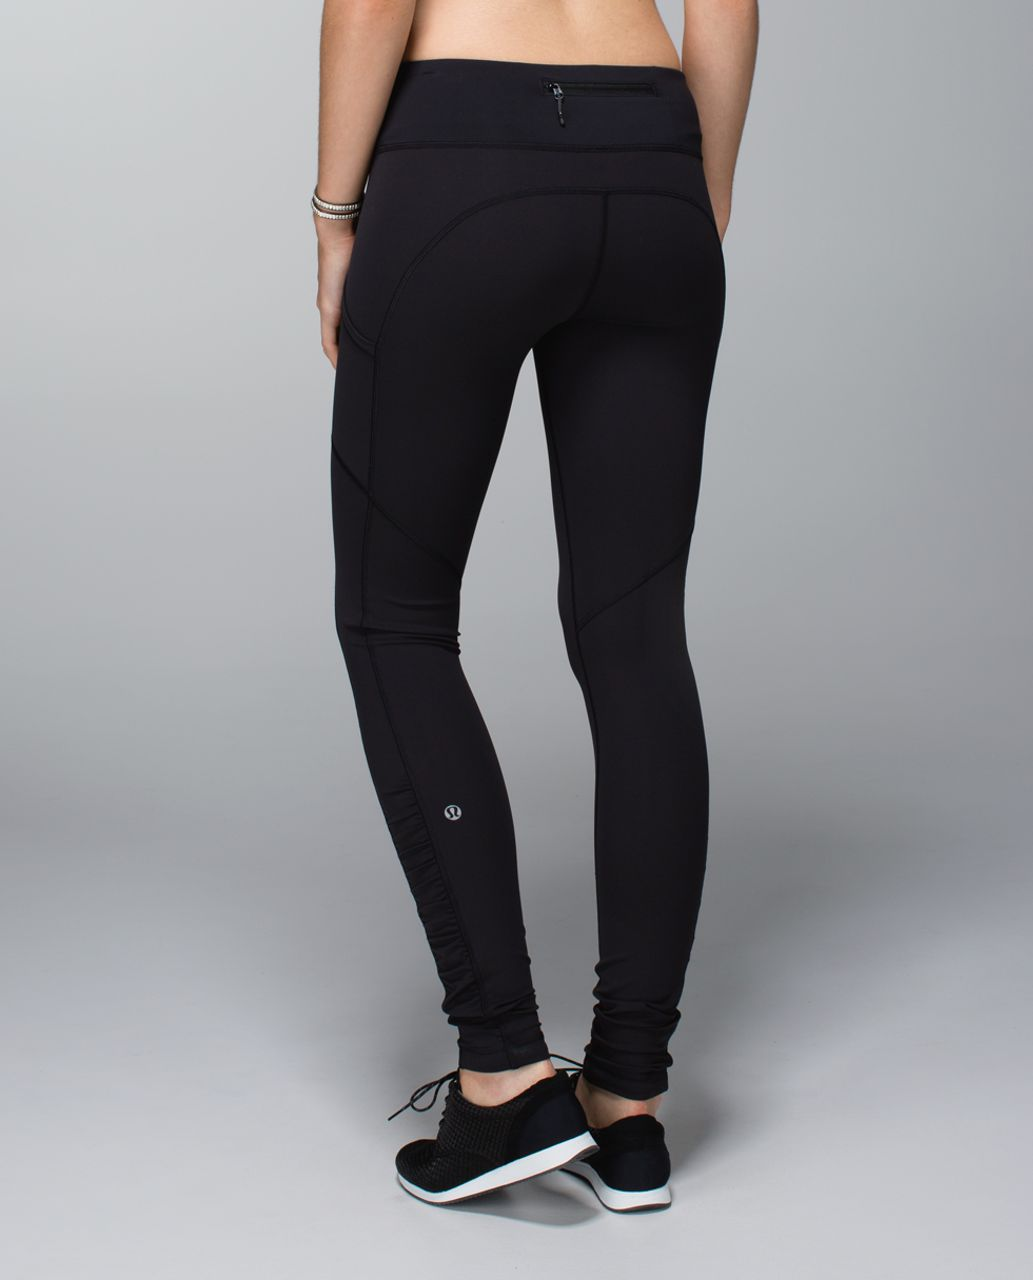 Lululemon Speed Tight *Interlock - Black